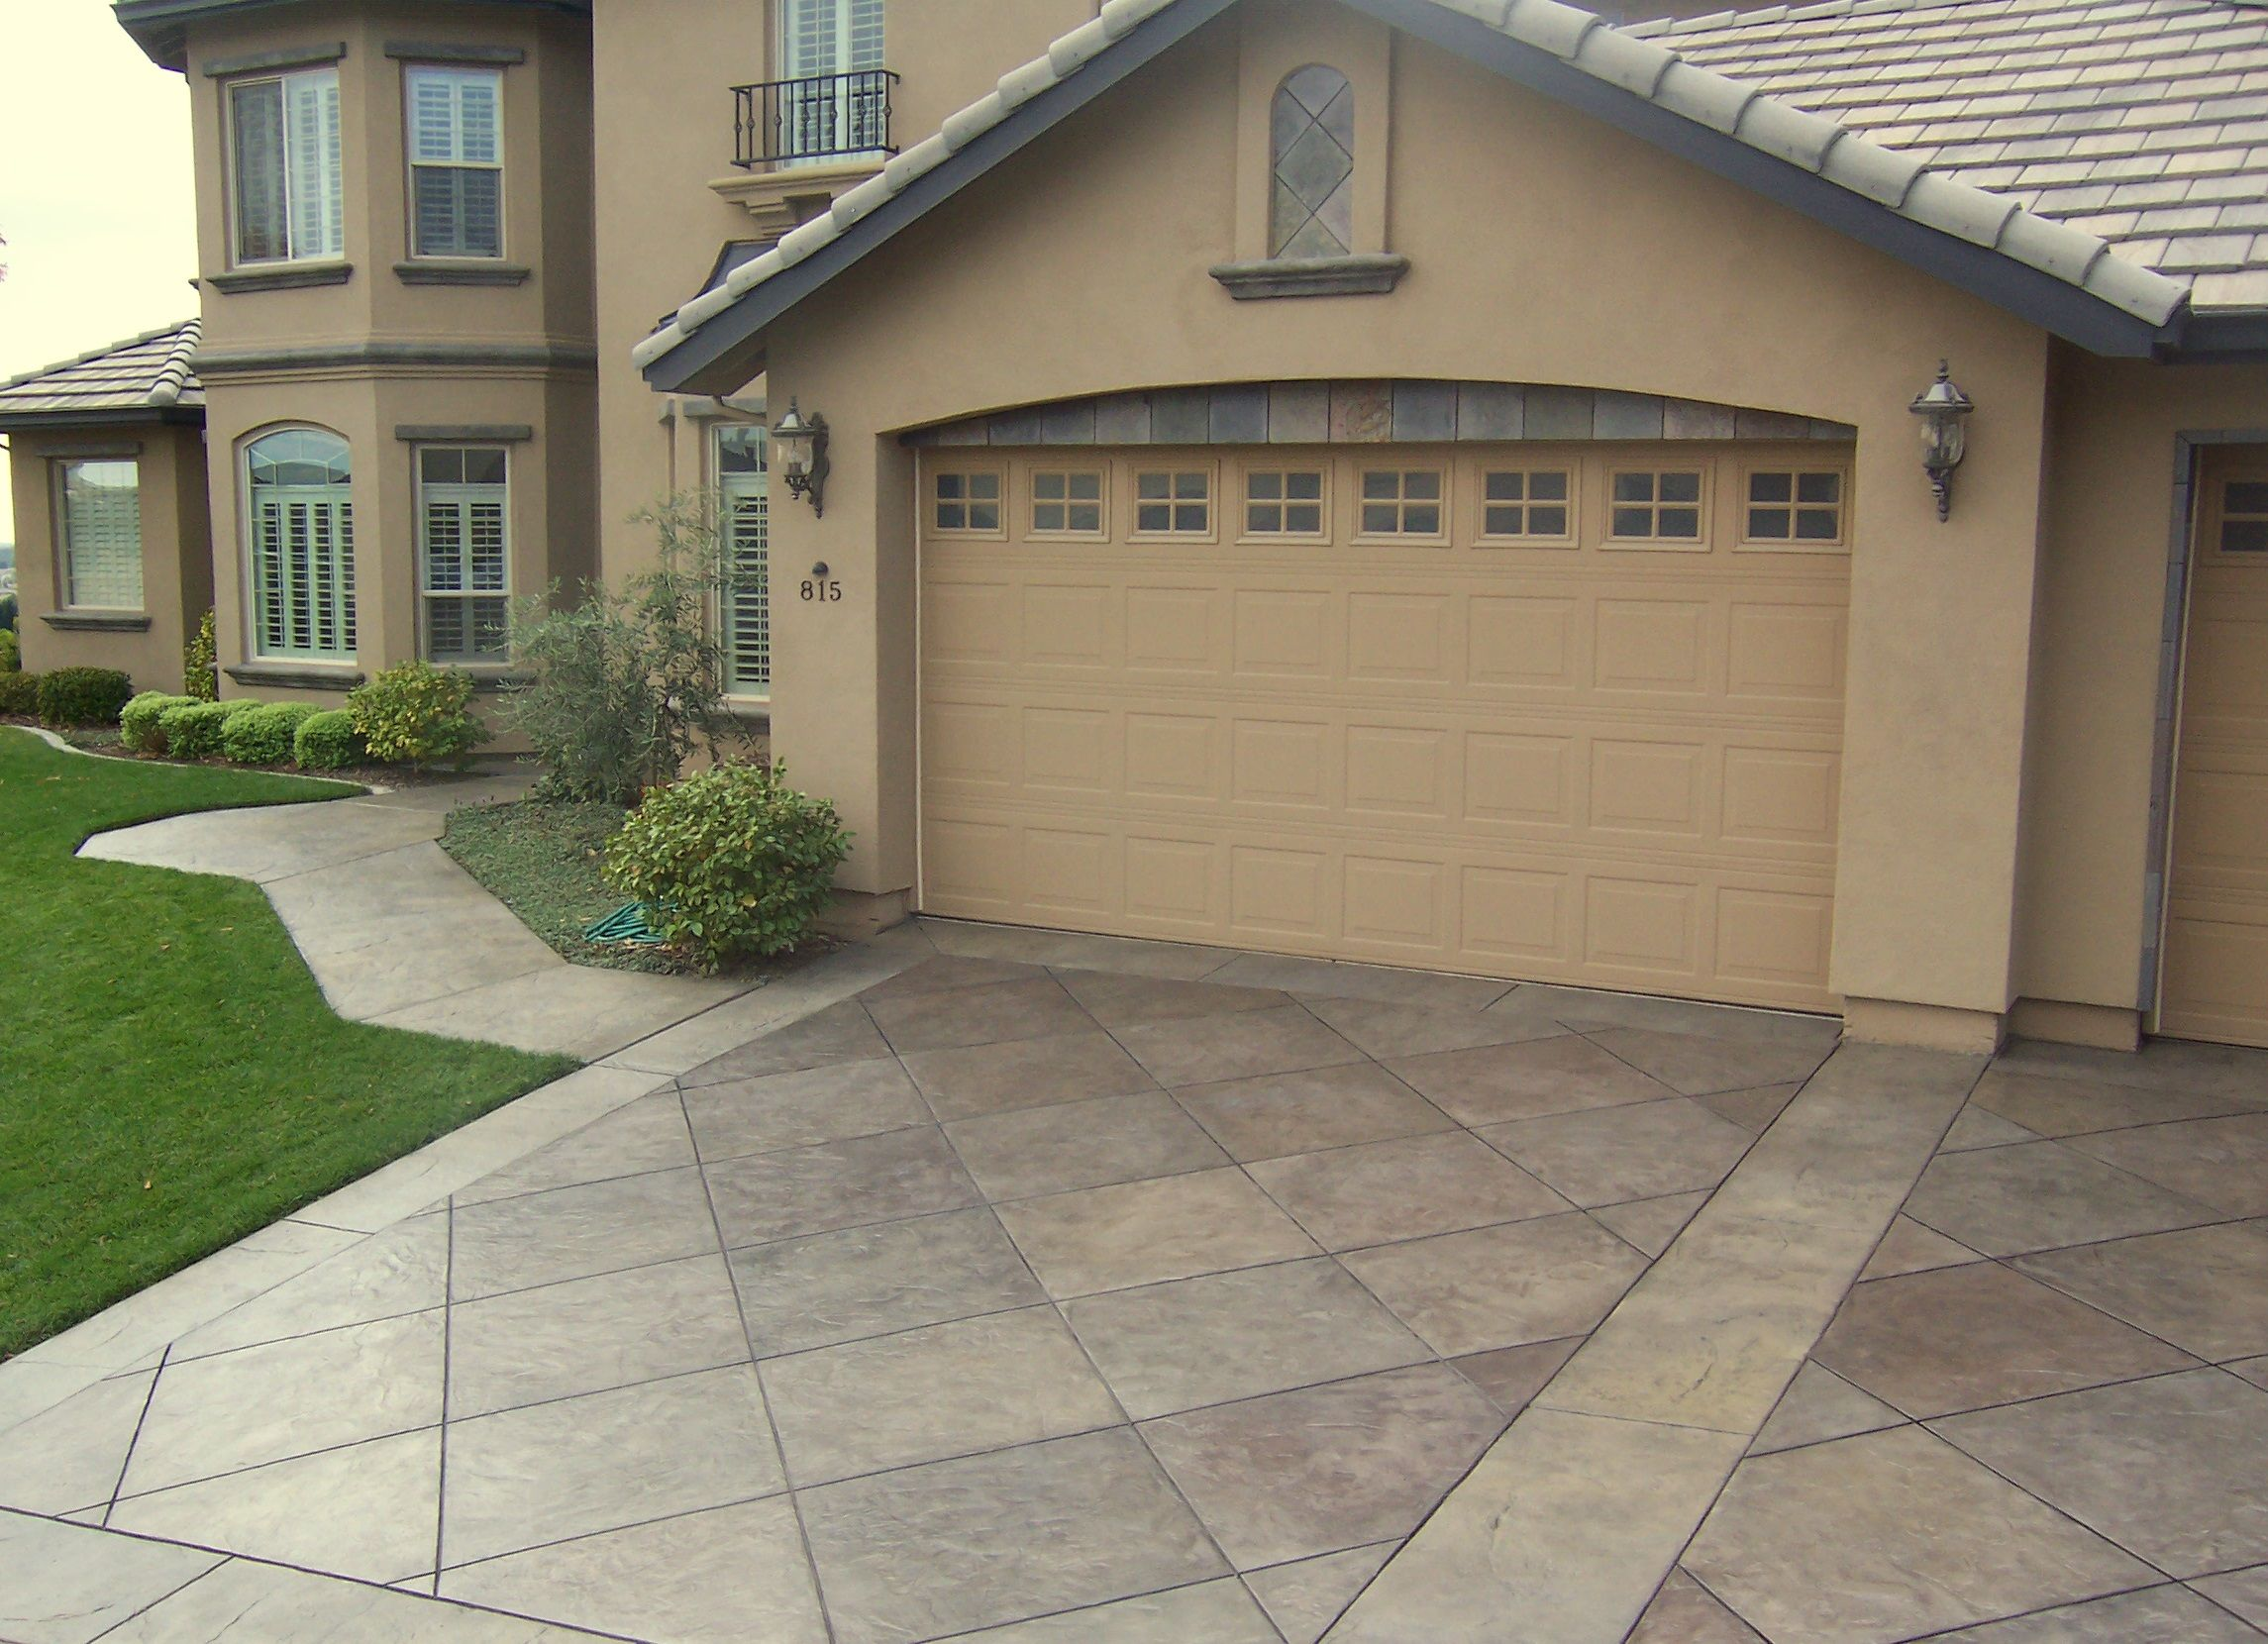 Concrete Driveway Design Ideas flagstone natural concrete driveways decorative concrete institute temple Cement Driveway